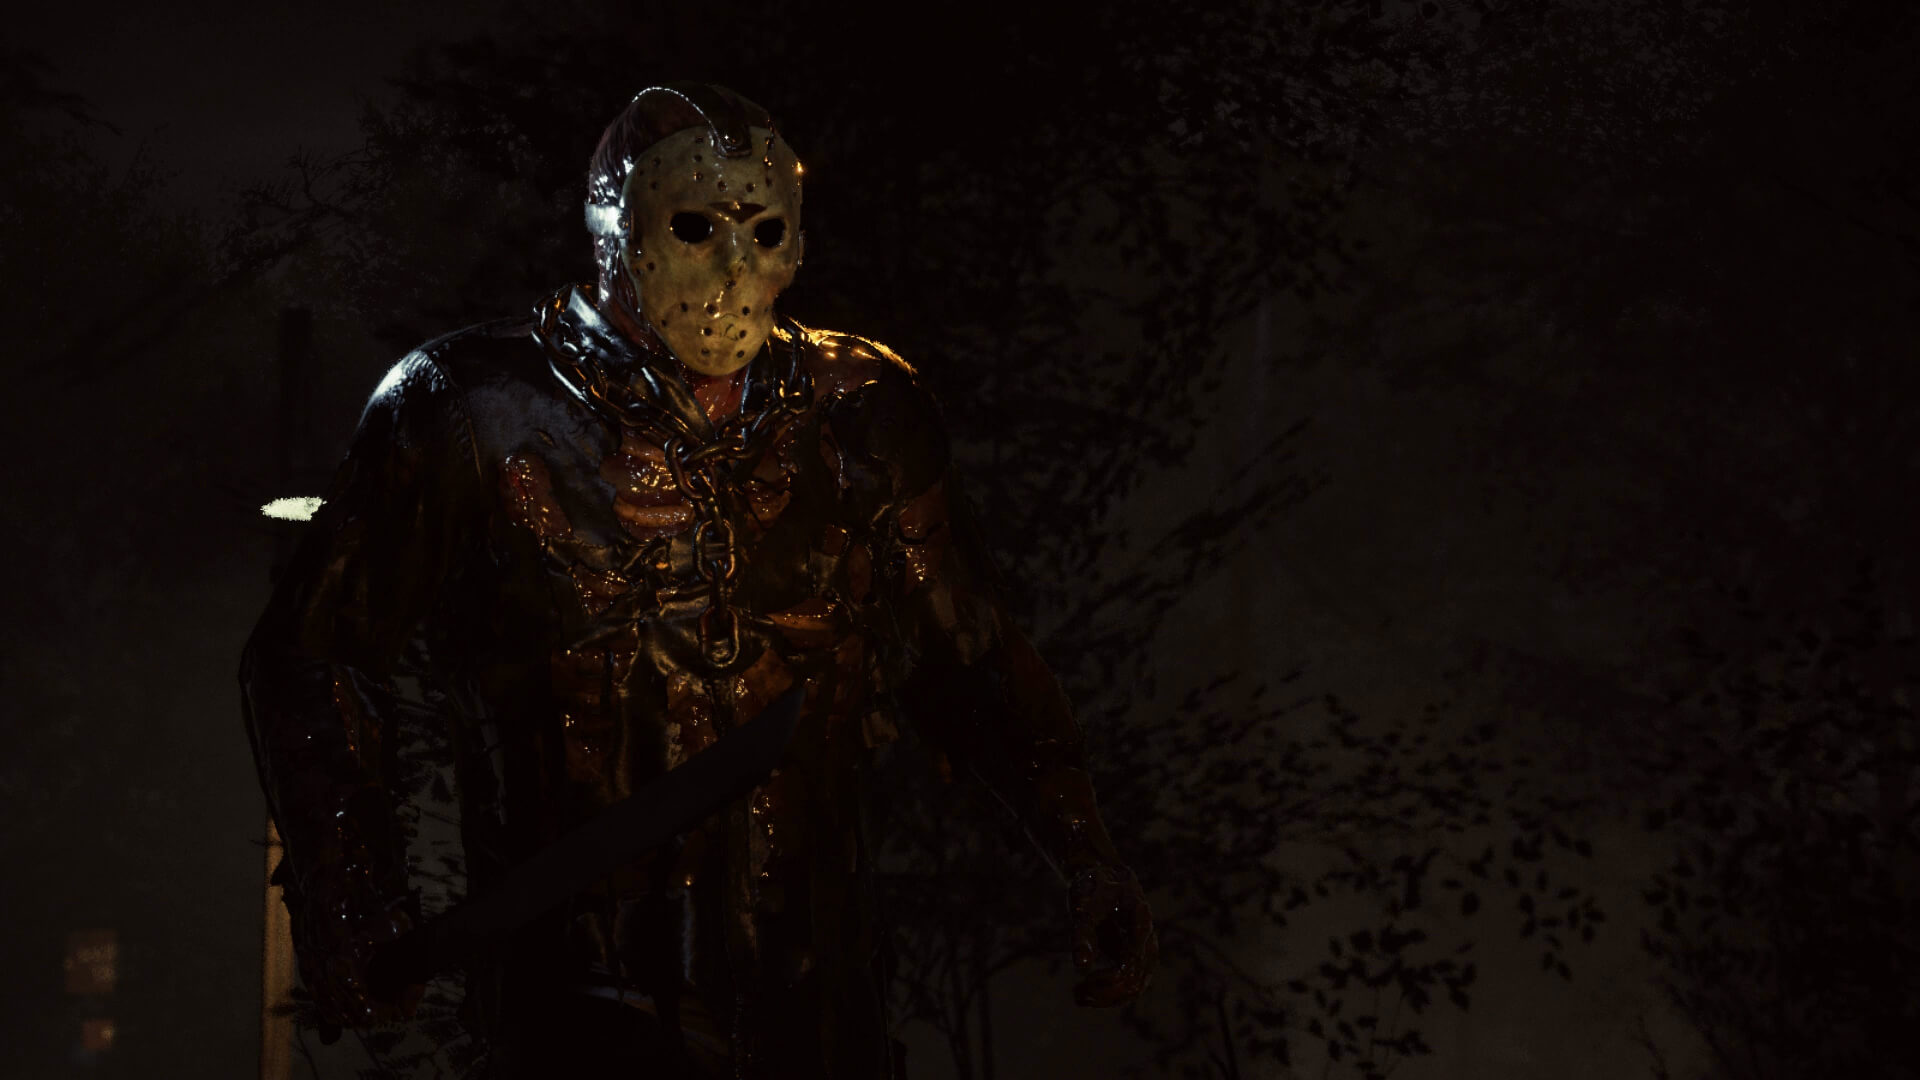 Friday the 13th to Stop Making Content Due to Lawsuit